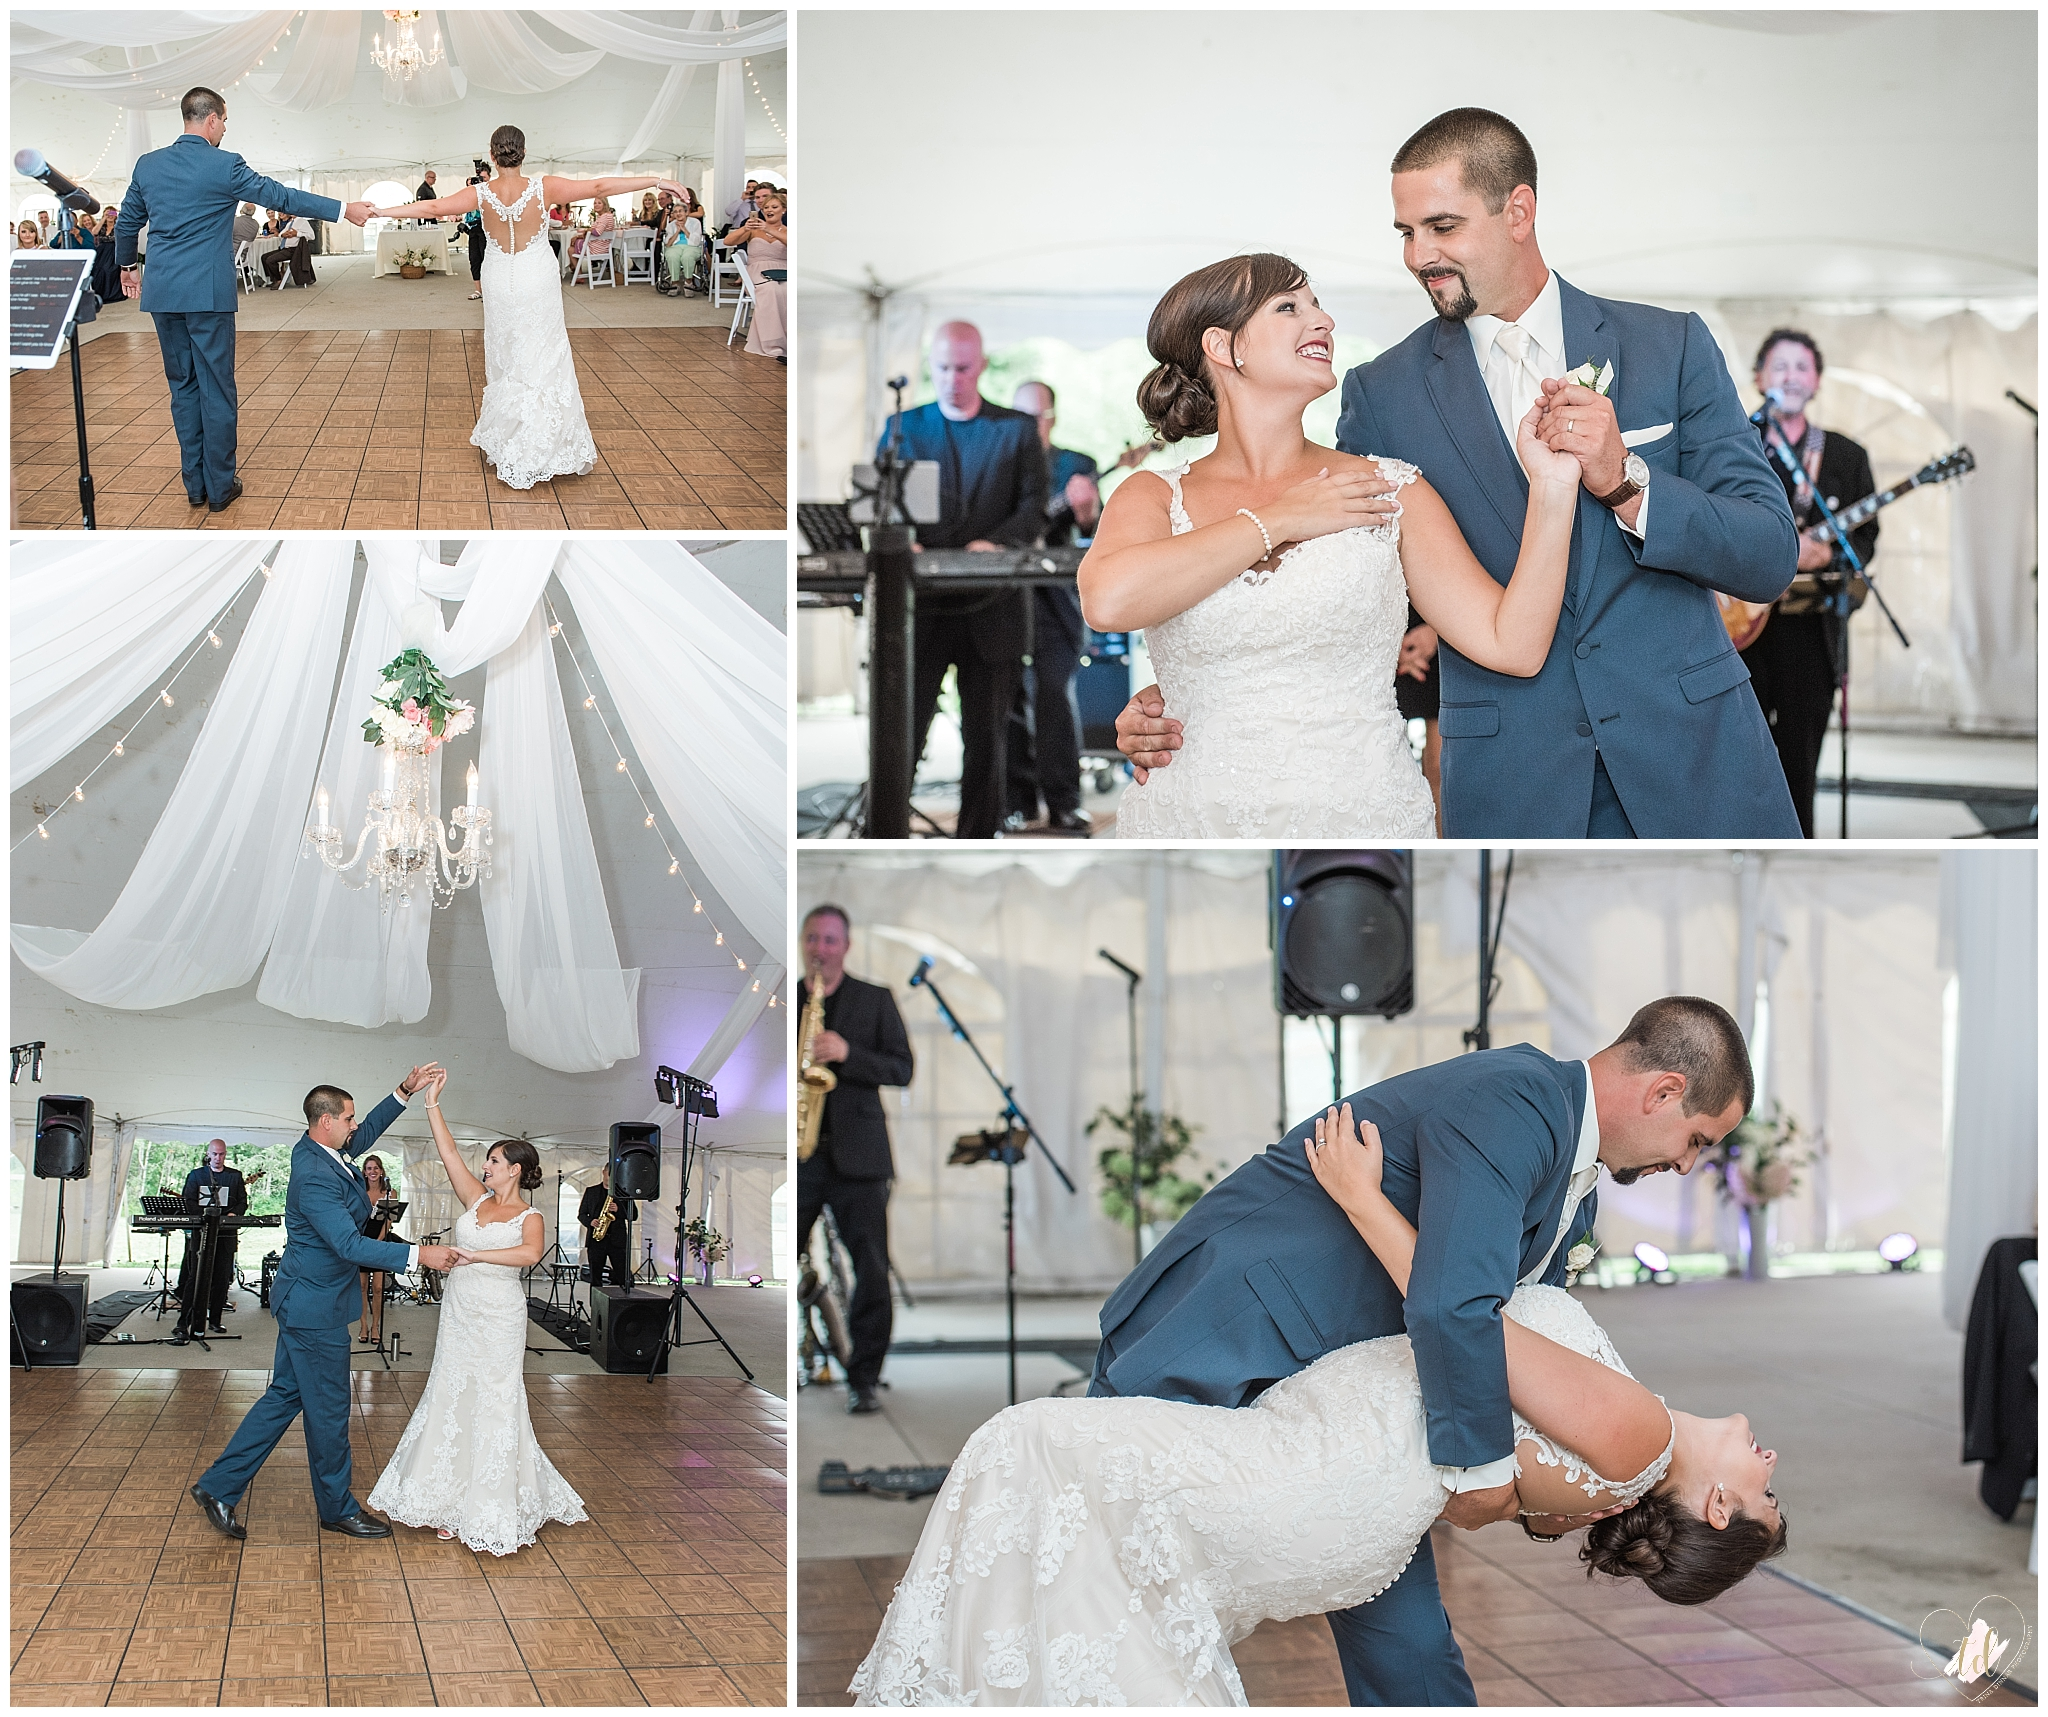 Bride and Groom share their first dance at the Falmouth County Club.